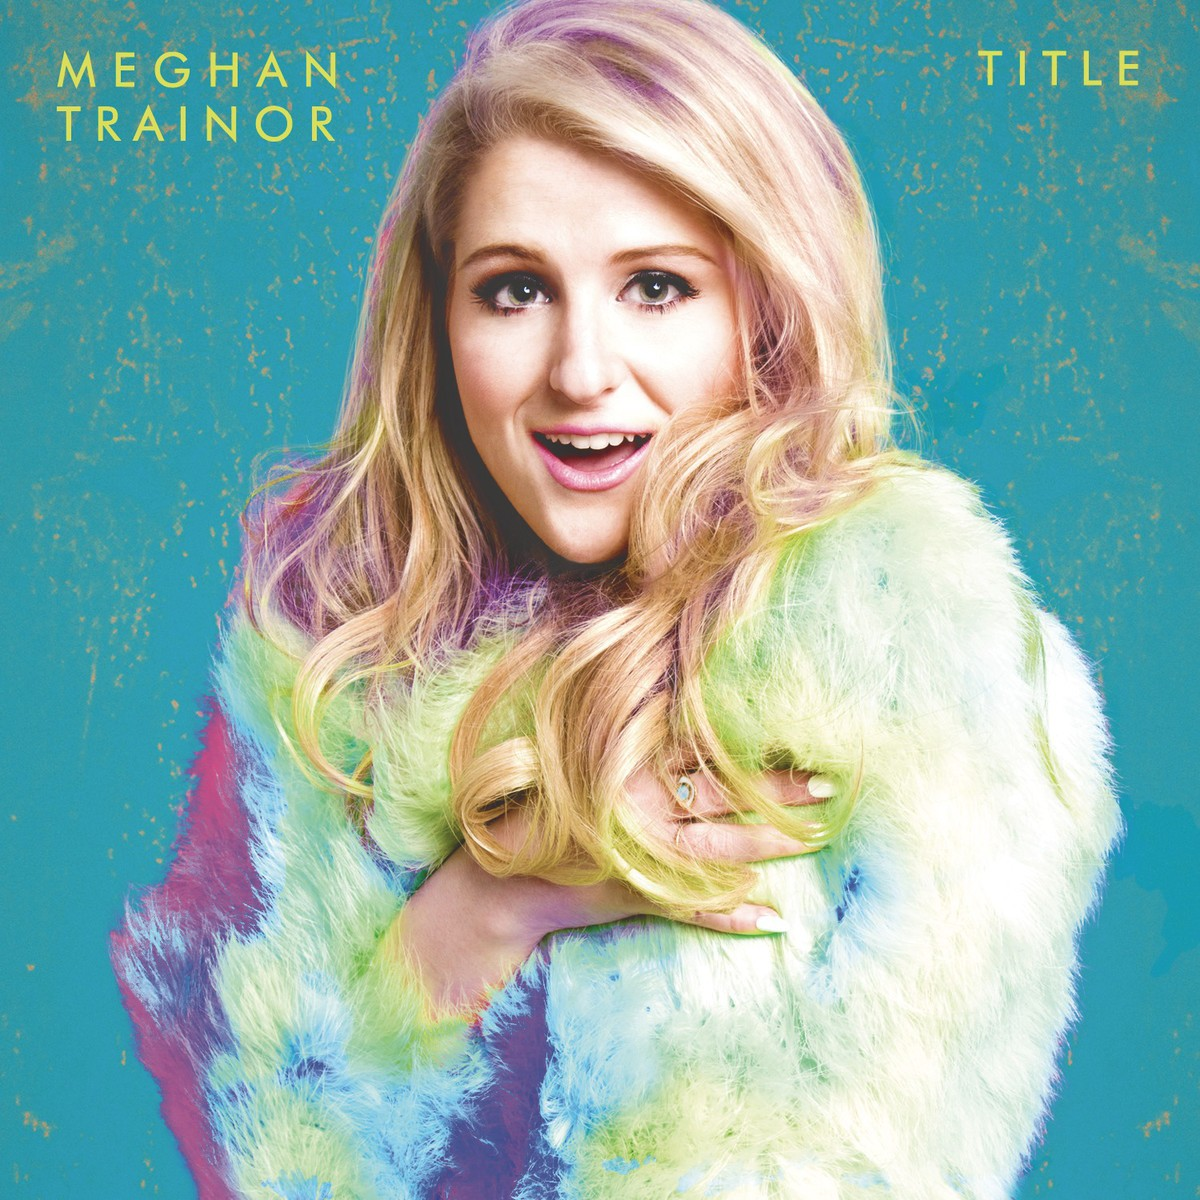 Meghan Trainor - Title (Deluxe) CD - CDEPC7158